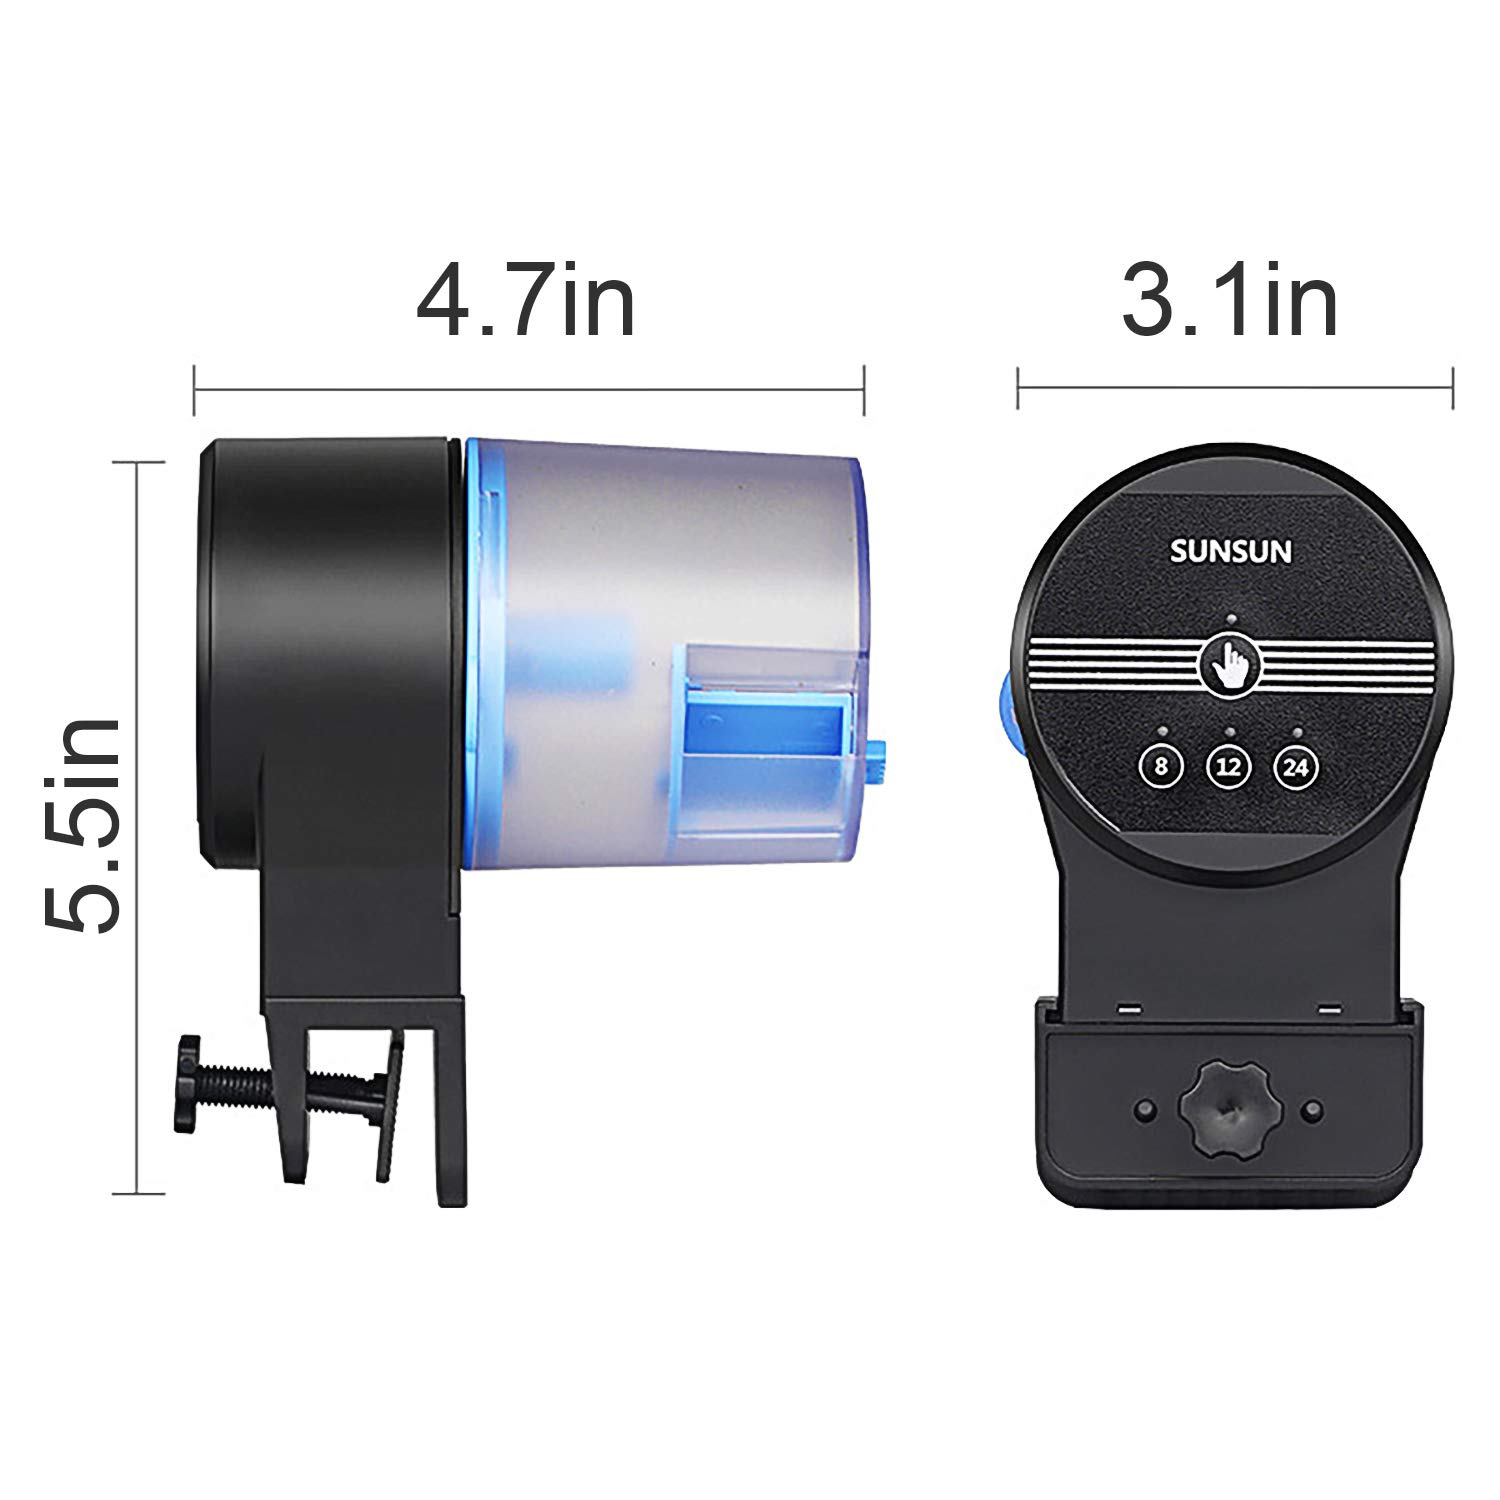 DOTSOG Digital Automatic Fish Feeder - Rechargeable Timer Fish Feeder with USB Charger Cable, Fish Food Dispenser for Aquarium or Fish Tank by DOTSOG (Image #4)